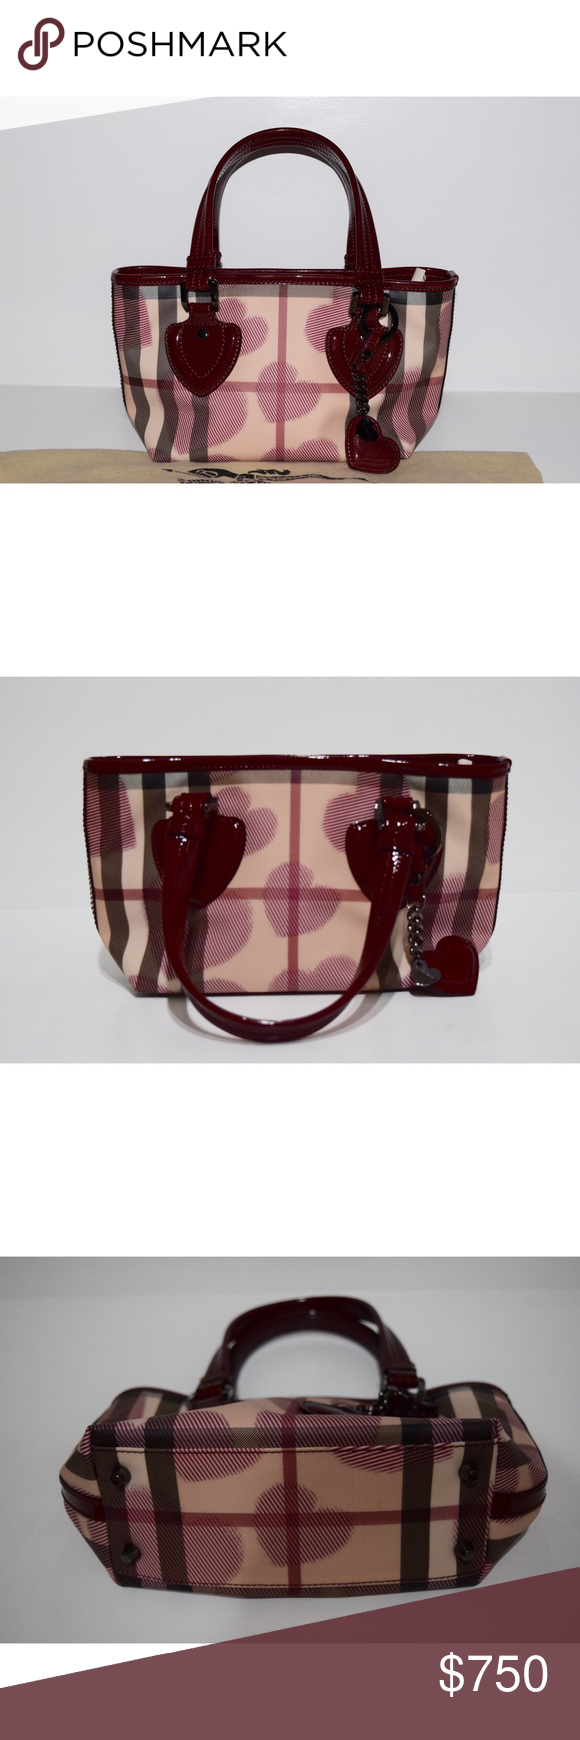 26c9825ad754 Authentic Burberry Prorsum Small Heart Print Bag Authentic Burberry Prorsum  Small Bag - Excellent Condition - Never used